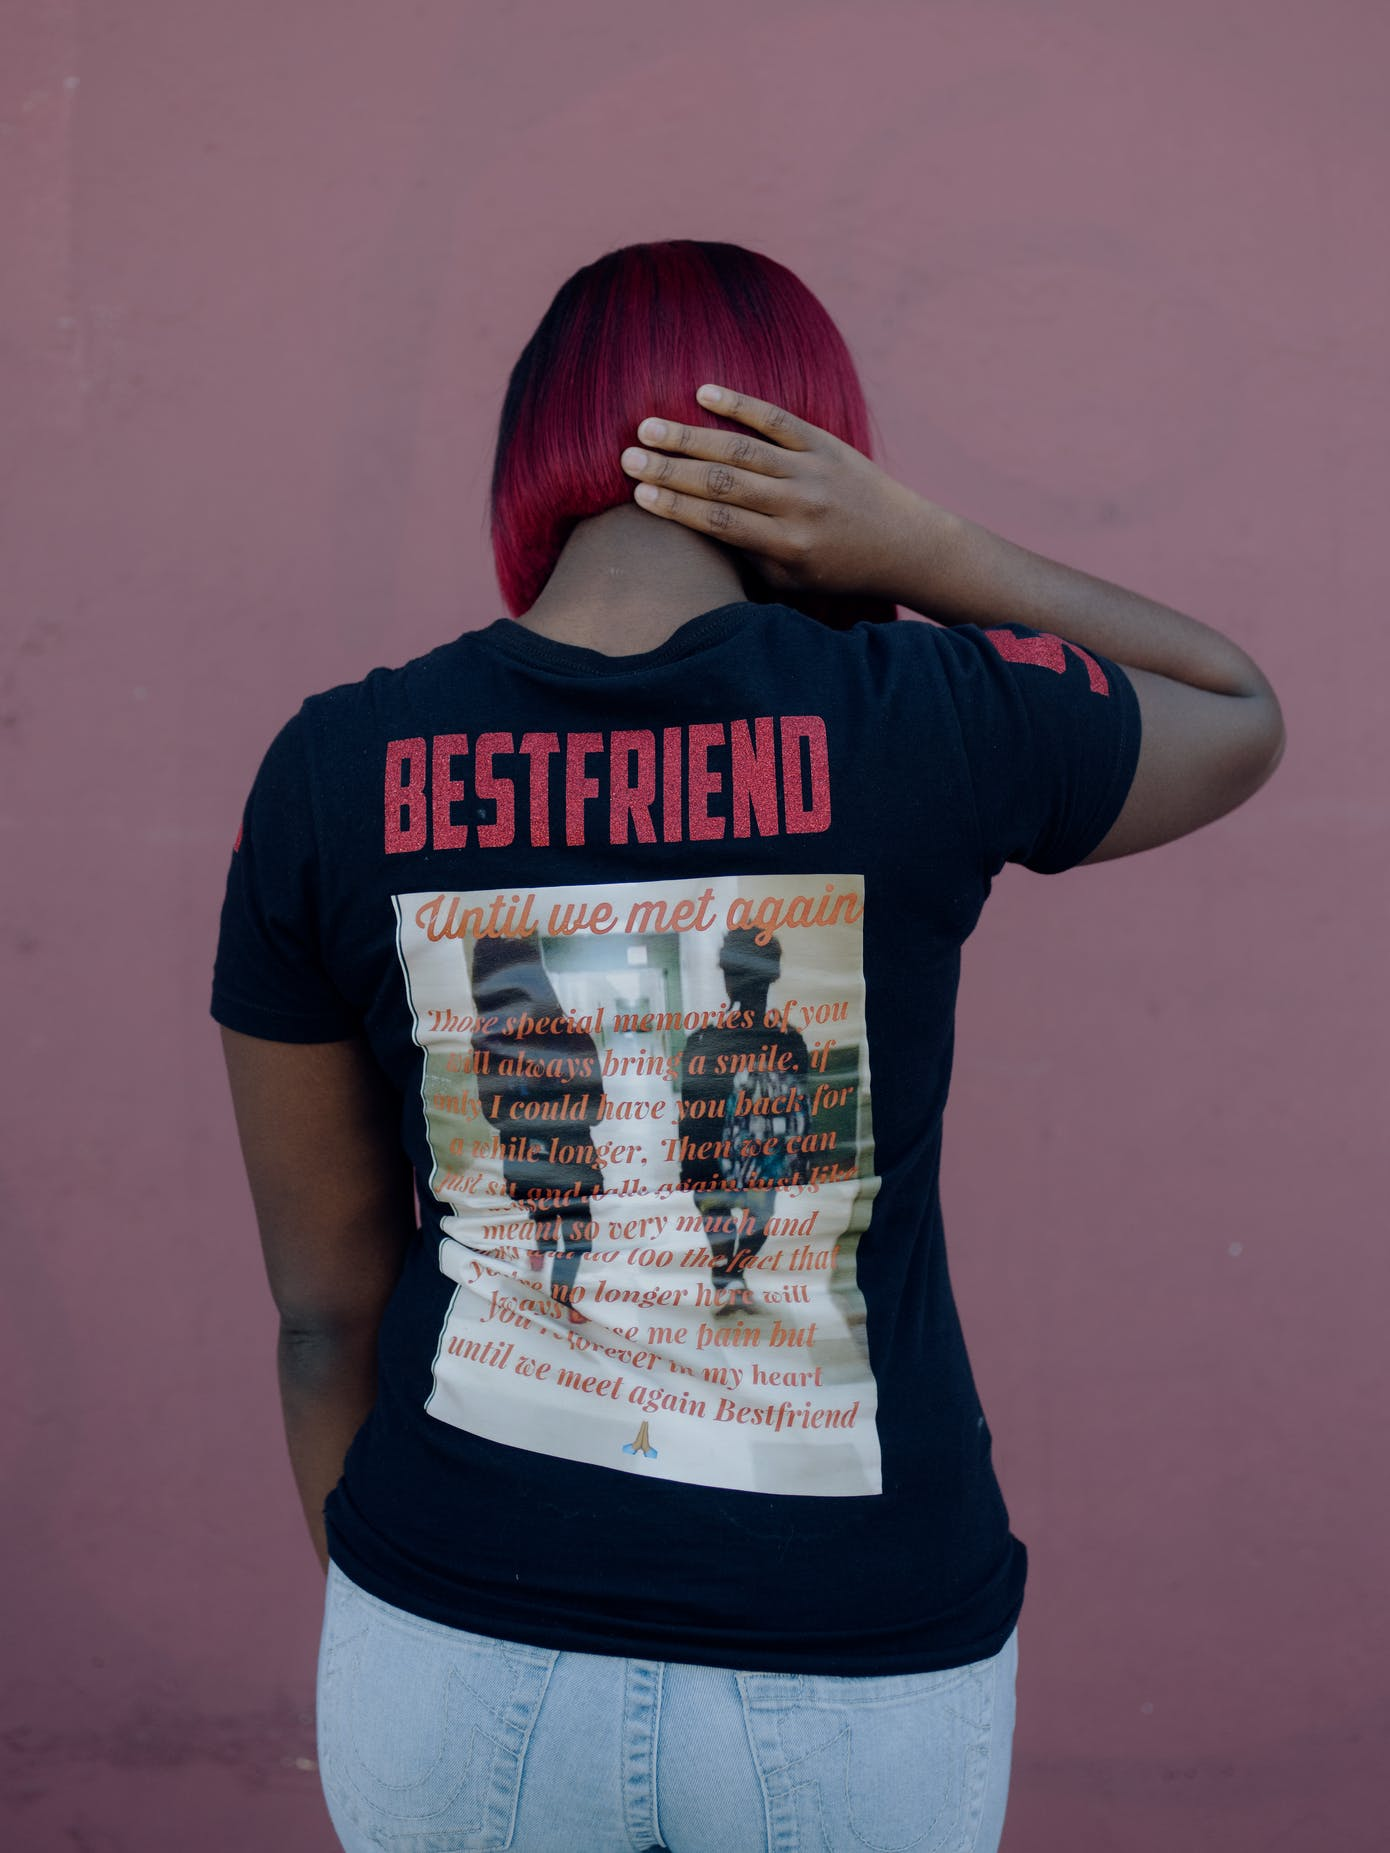 69737a96 Lateonna Guillaume, 17, wears a T-shirt honoring her best friend, Terrell  Thomas, 17, who was shot and killed in Opa-locka on October 8, 2017, ...